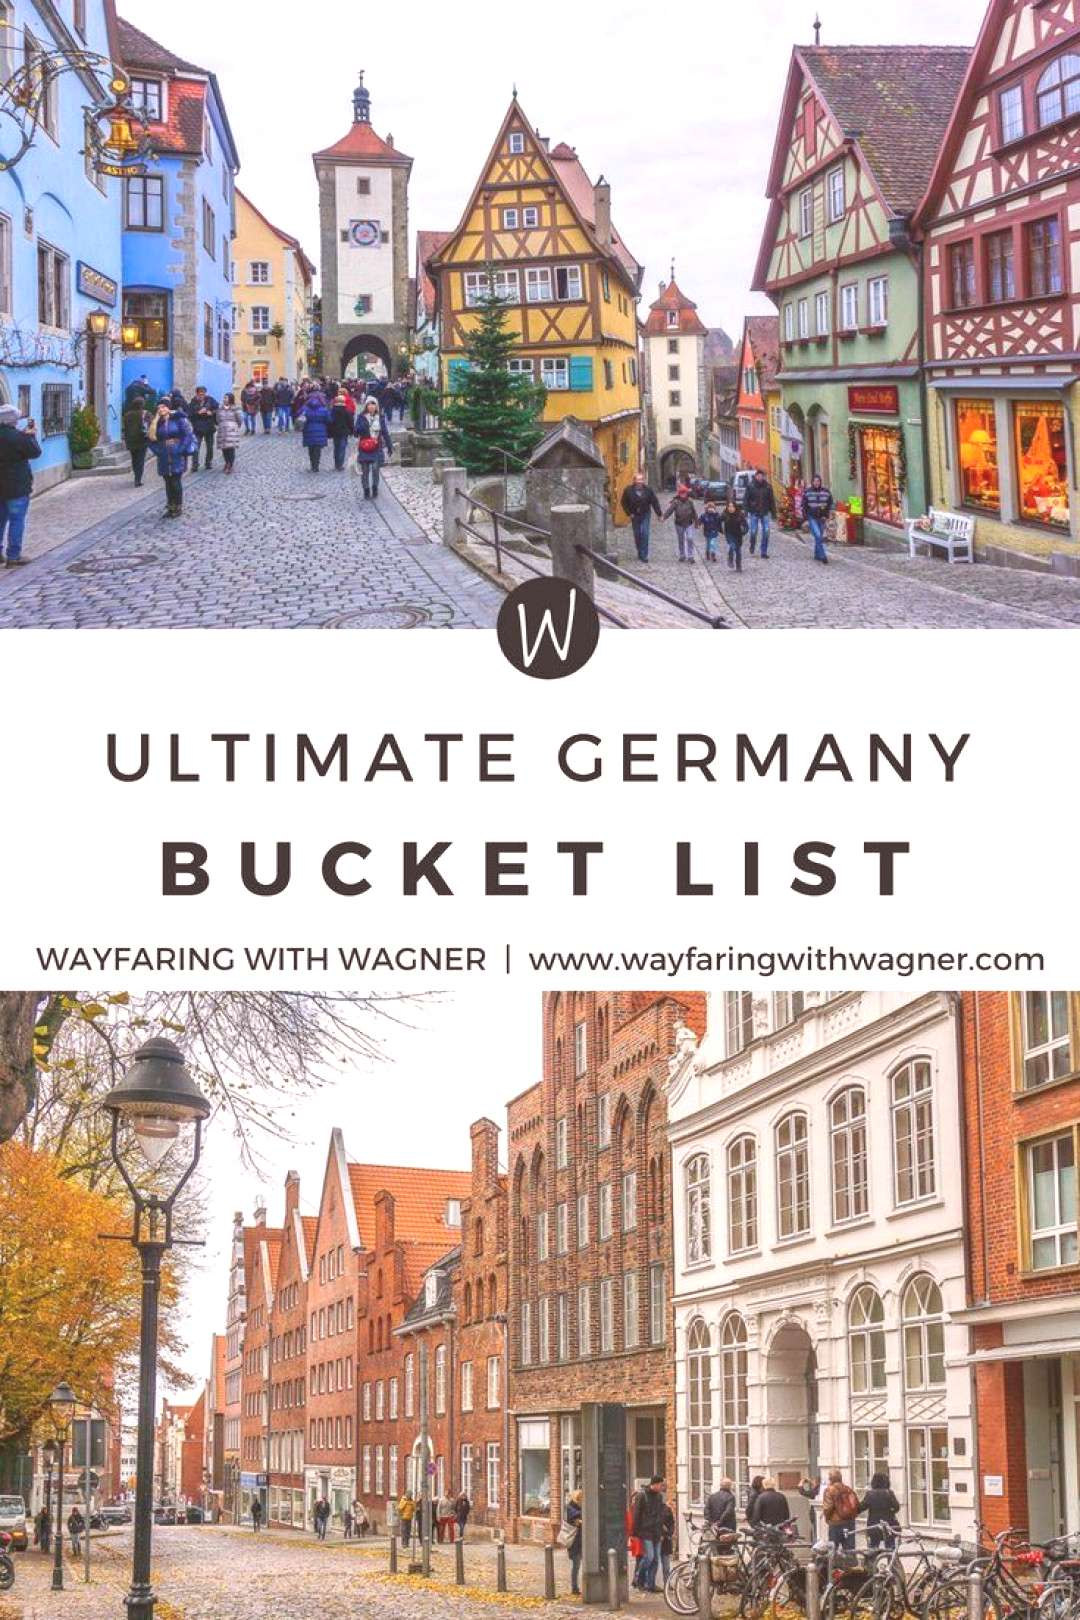 This ultimate Germany bucket list is comprised of Germanys most famous tourist attractions, histor